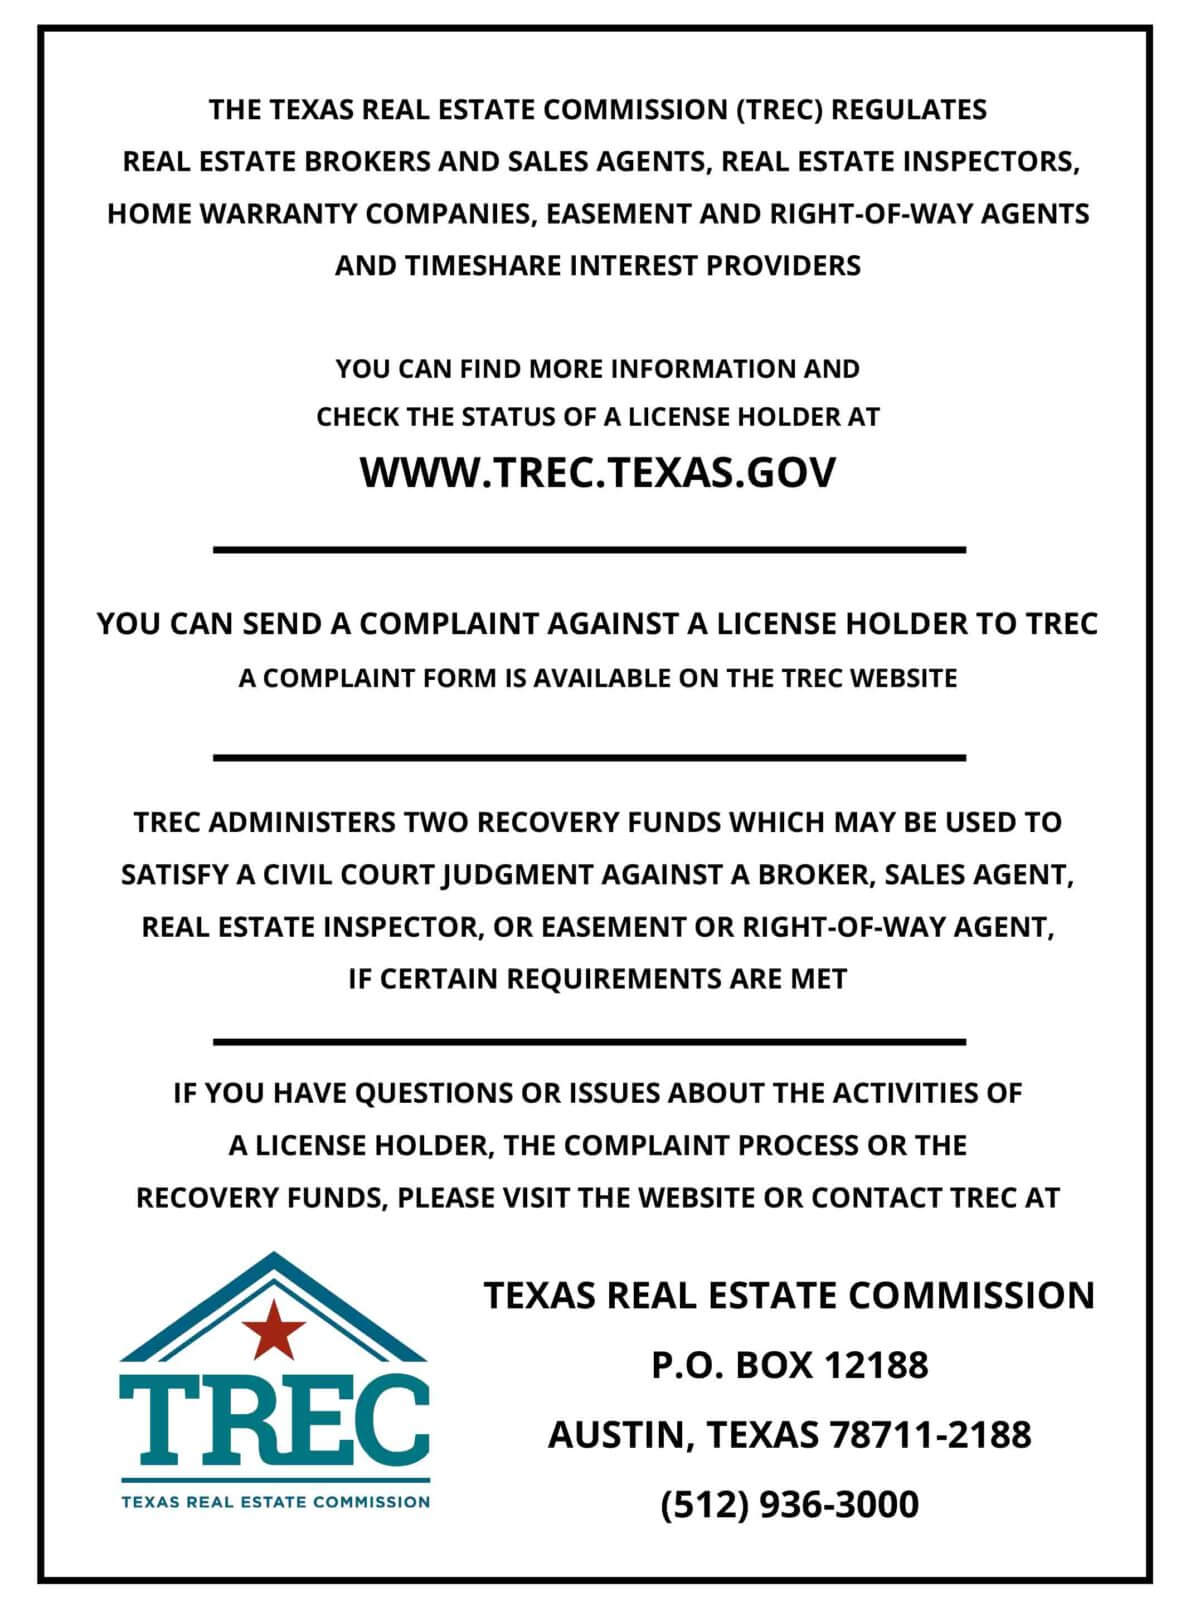 image of TREC Required Legal Information about Brokerage Services